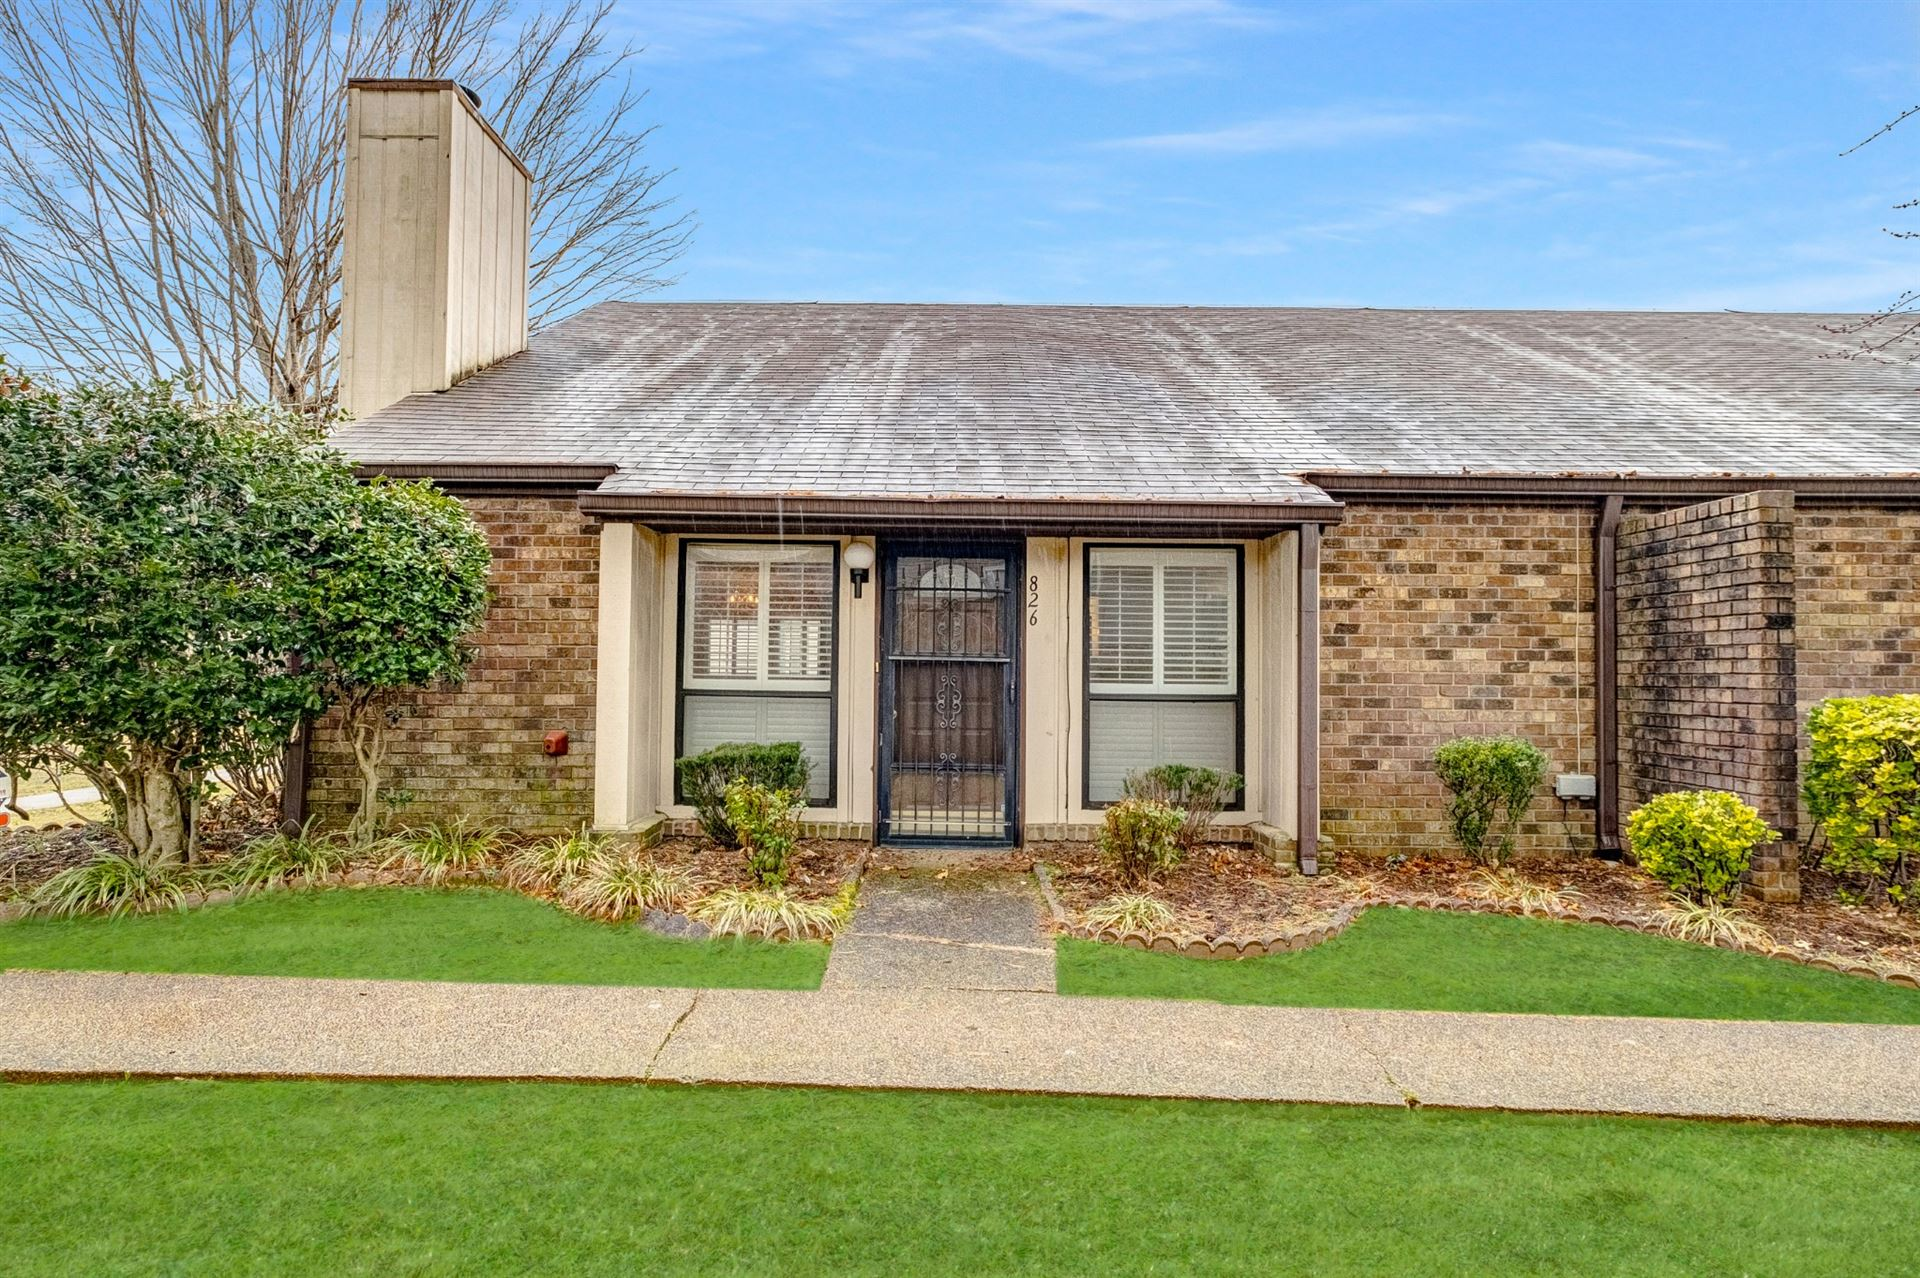 826 Old Coach Ct, Hermitage, TN 37076 - MLS#: 2230776